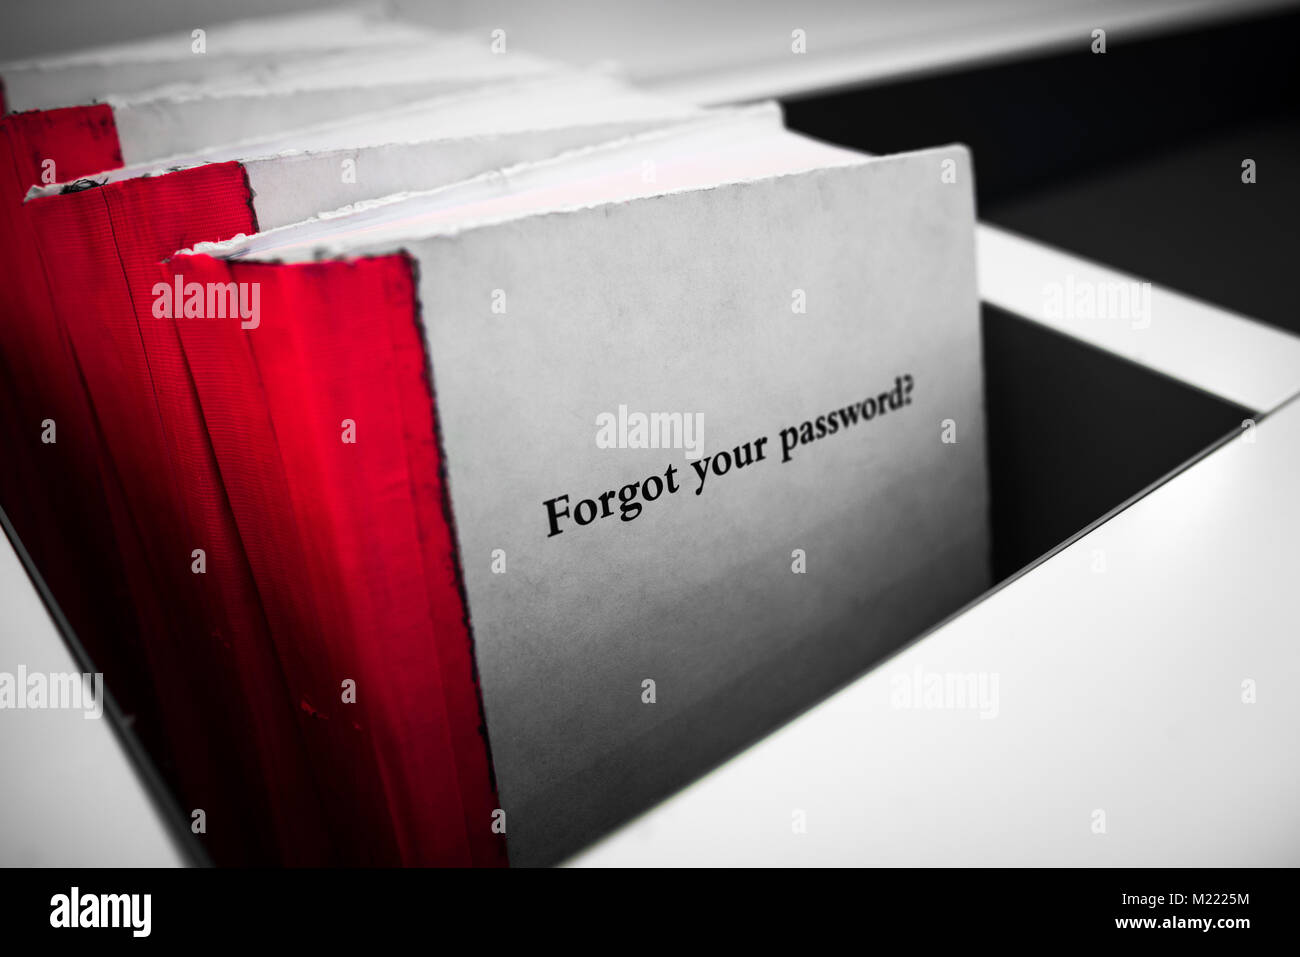 Forgot your password. White book with red binding and phrase Forgot Your Password on the cover. Technology concept. - Stock Image